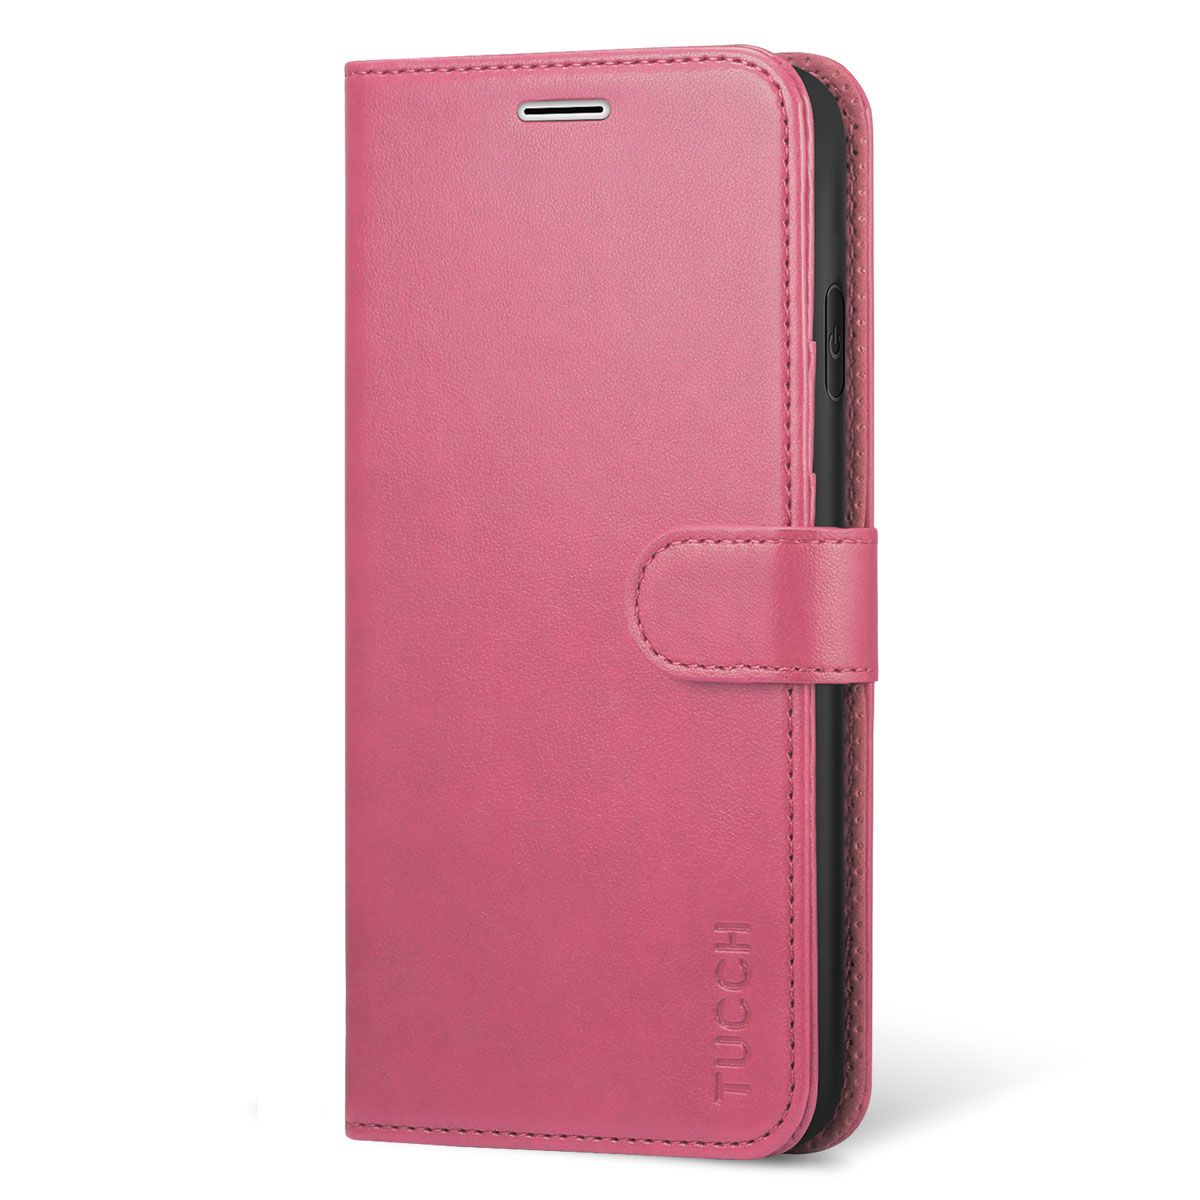 save off 600d2 e0d49 TUCCH iPhone Xs Max Wallet Case - iPhone 10s Max Leather Case Cover - Pink